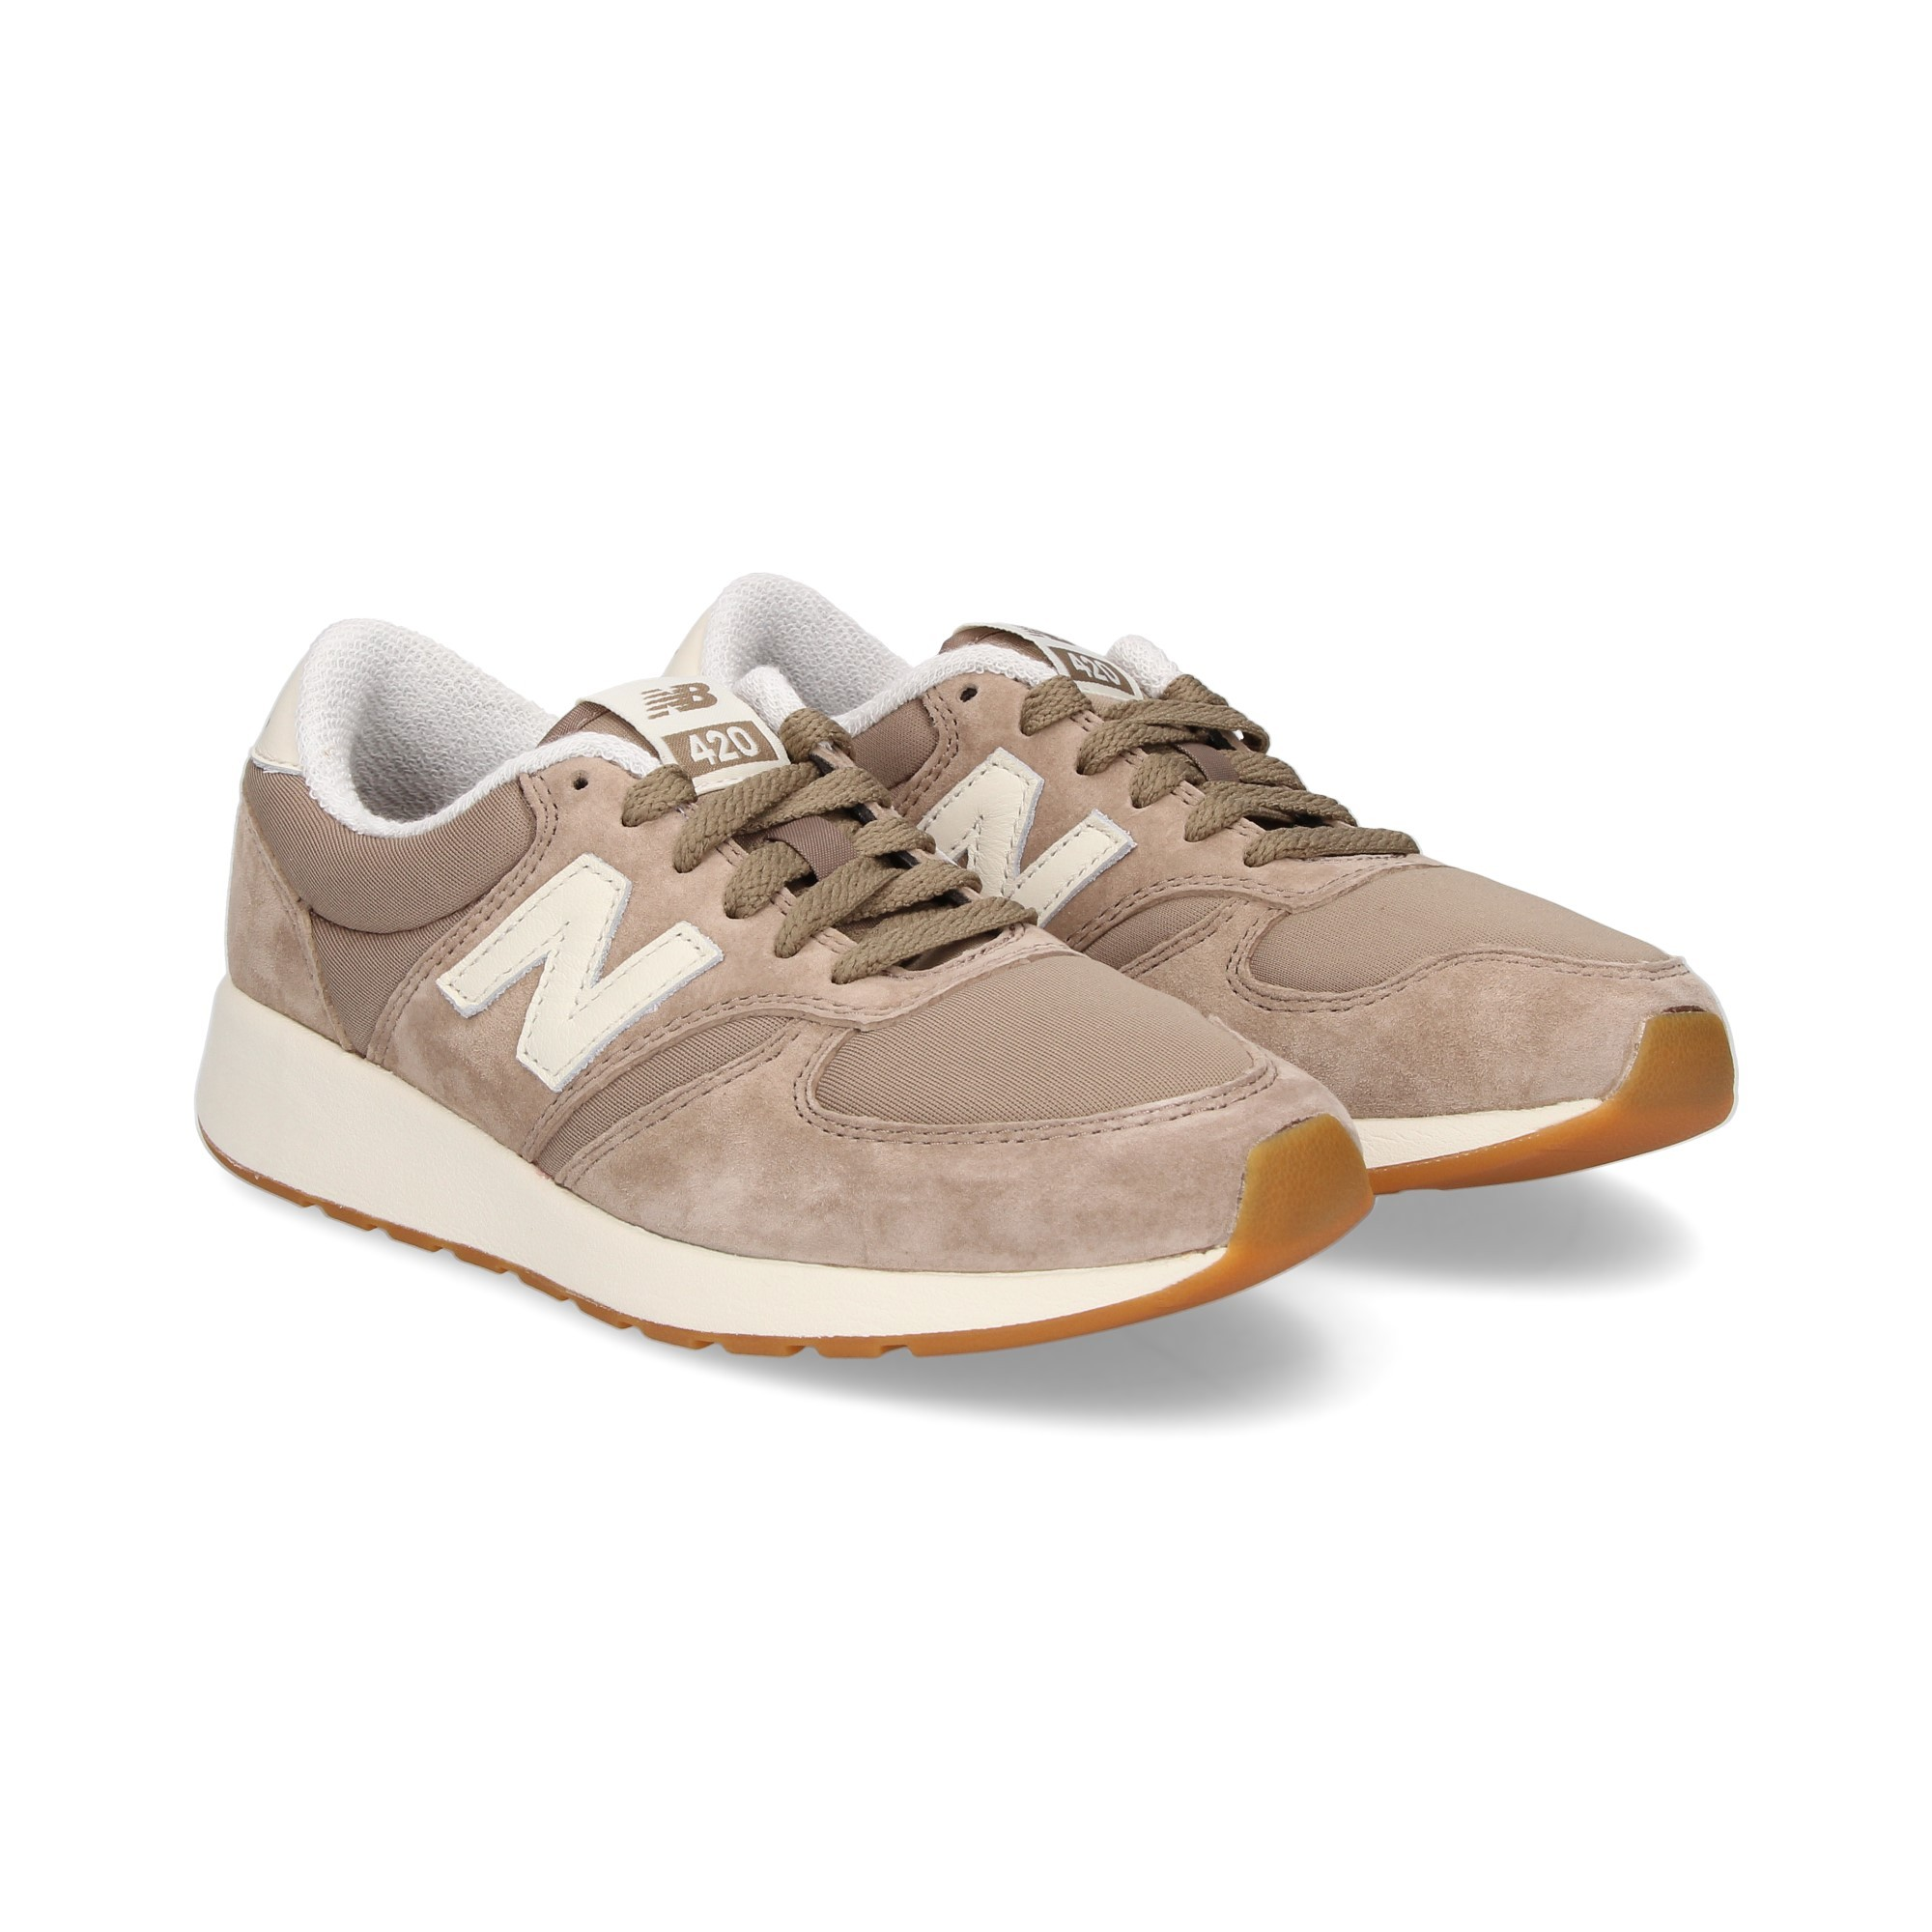 wholesale dealer 852d4 6b429 ... best deportivo ante camel cafc6 b3b24 best deportivo ante camel cafc6  b3b24  norway new balance mrl996 mens casual shoes ...